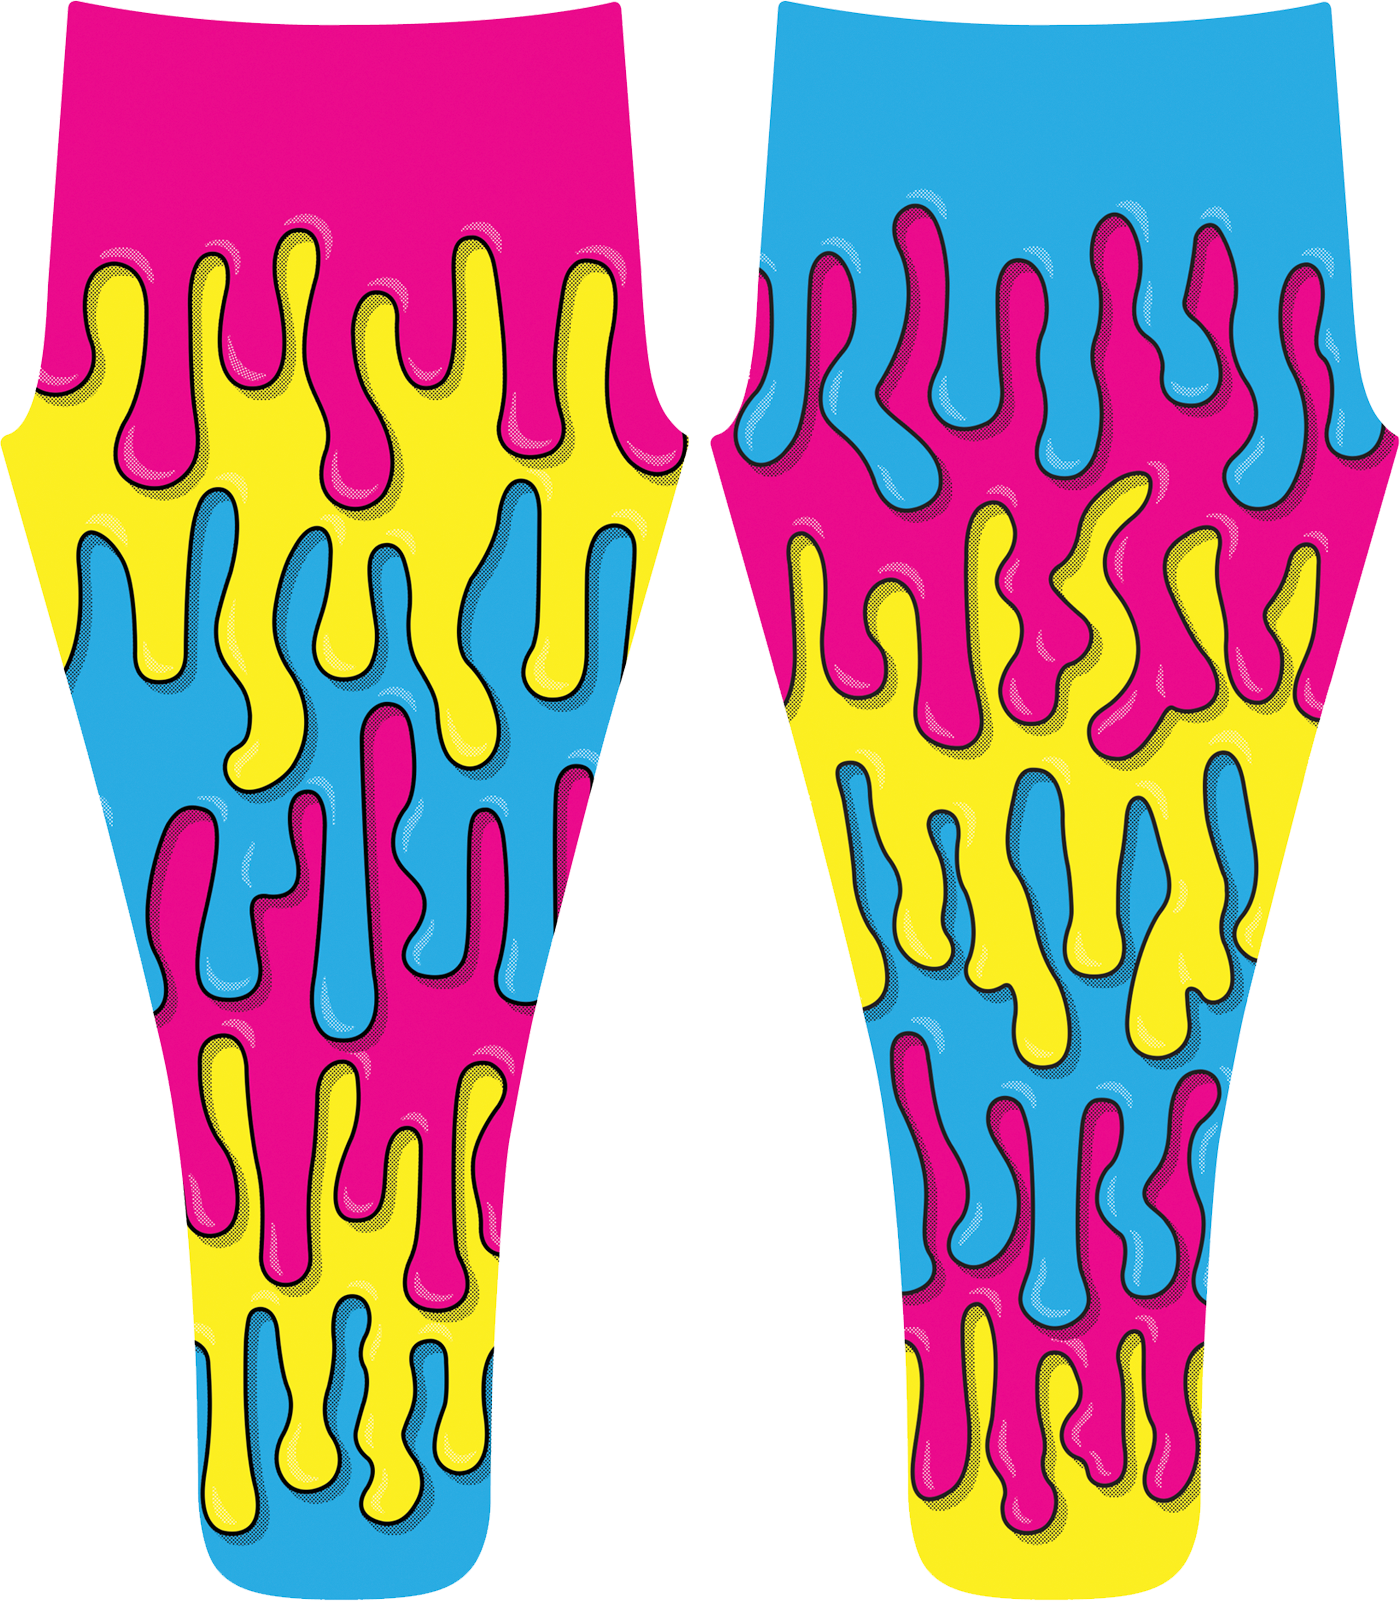 The file size for each leg was massive, due to the both canvases wrapping across the length and width of each leg and foot. The illustration also had to cover the area of the fabric hidden in the seam allowance to avoid any blank spots, much like how you fill a digital canvas to the bleed line to avoid white hairlines when cutting the printed version.